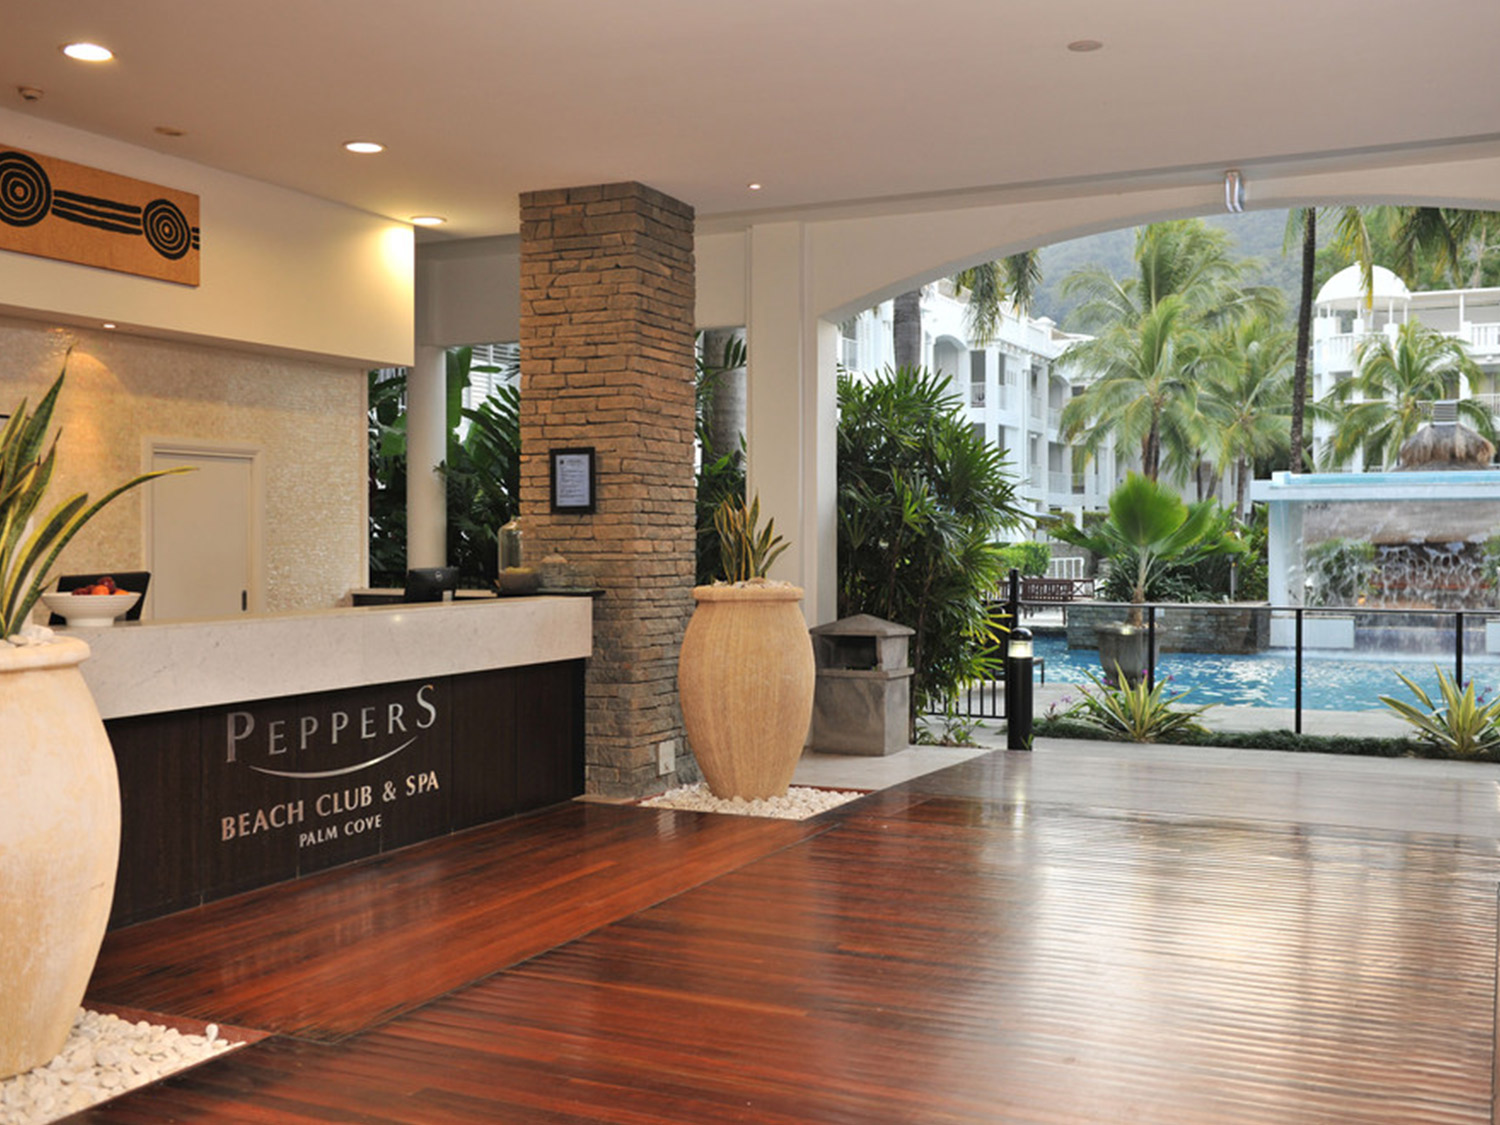 Peppers Beach Club & Spa Palm Cove